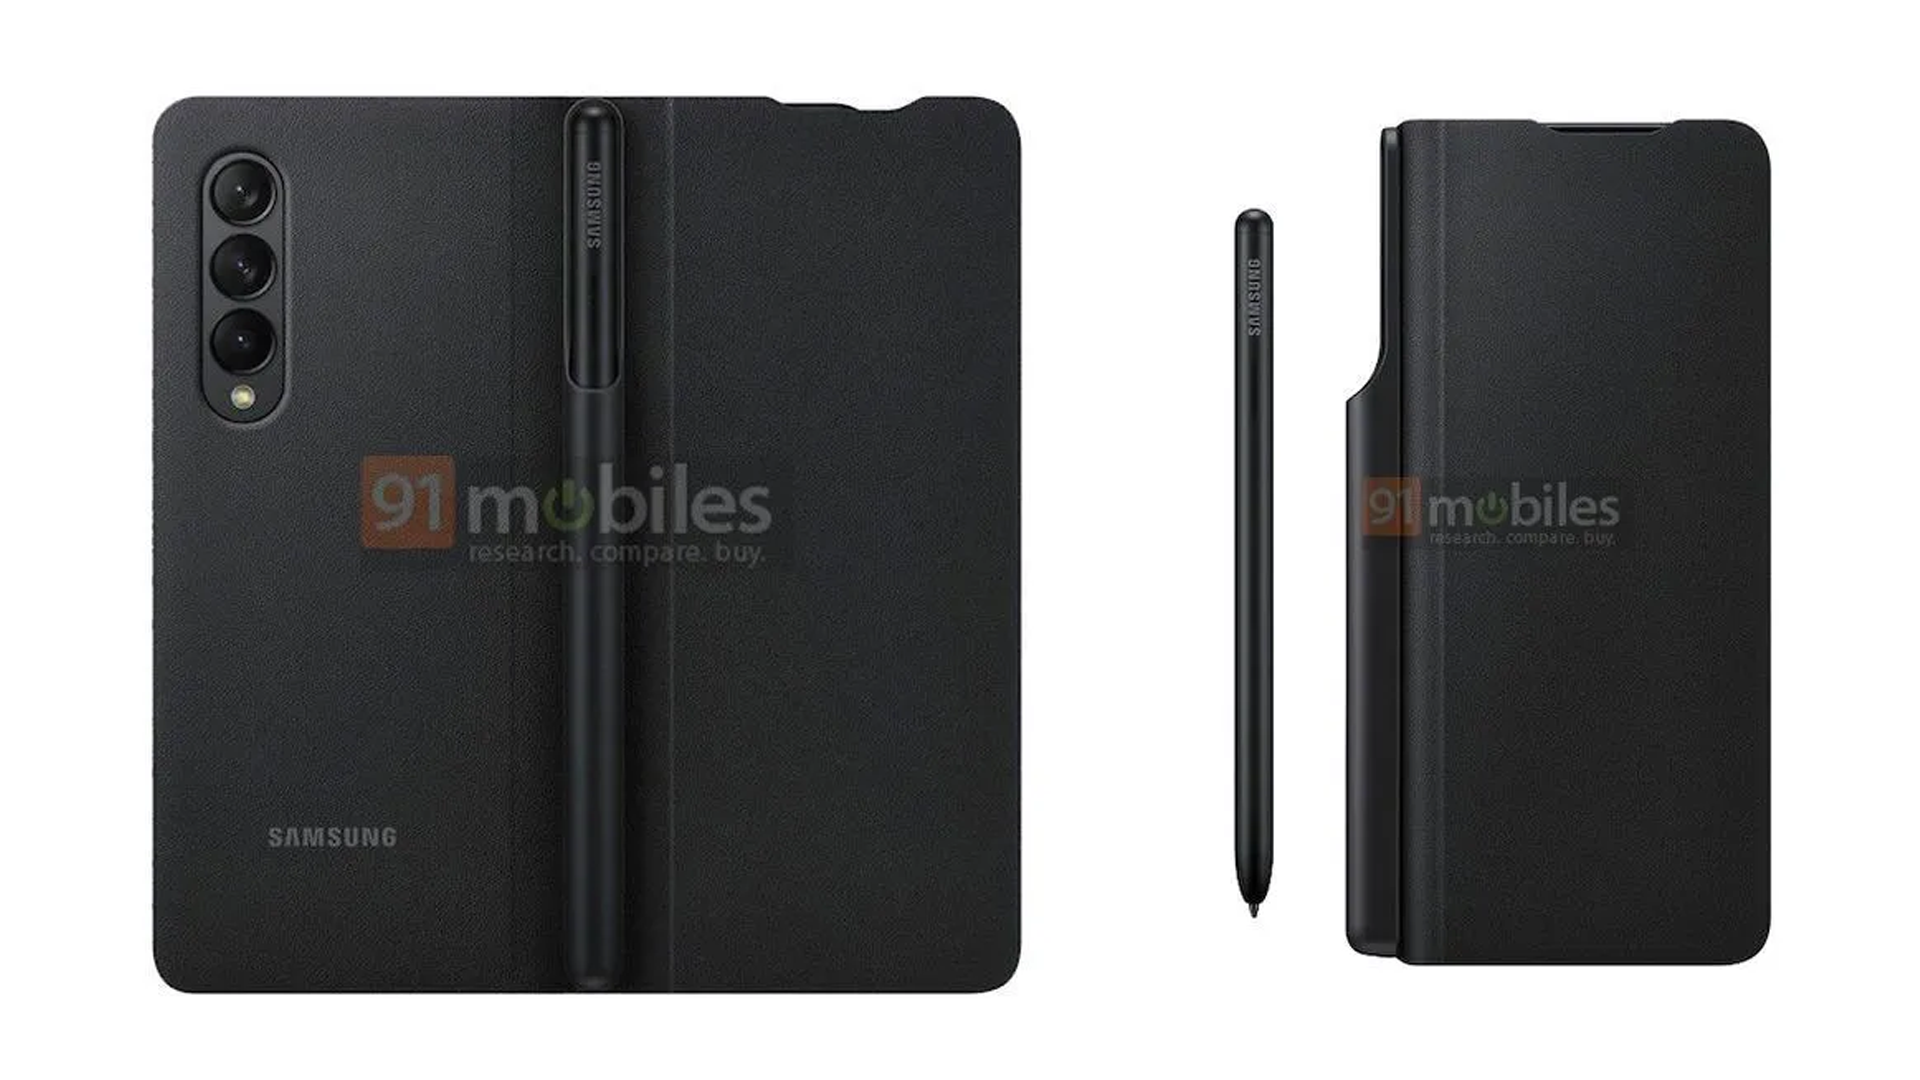 Leaked images of the S Pen with Galaxy Z Fold 3.